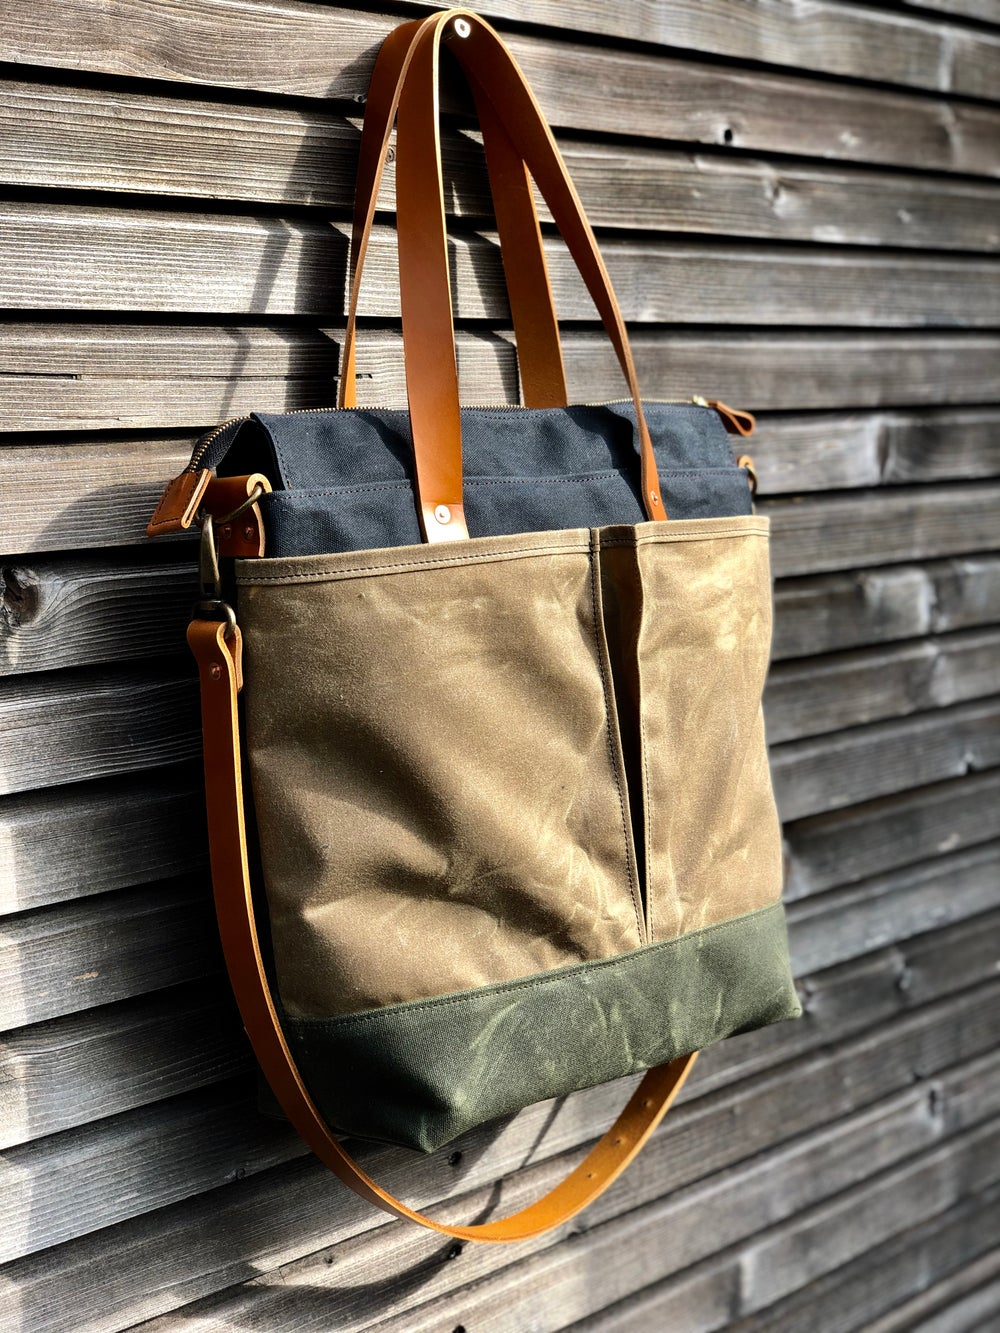 Image of Waxed canvas tote bag / office bag with leather handles and shoulder strap